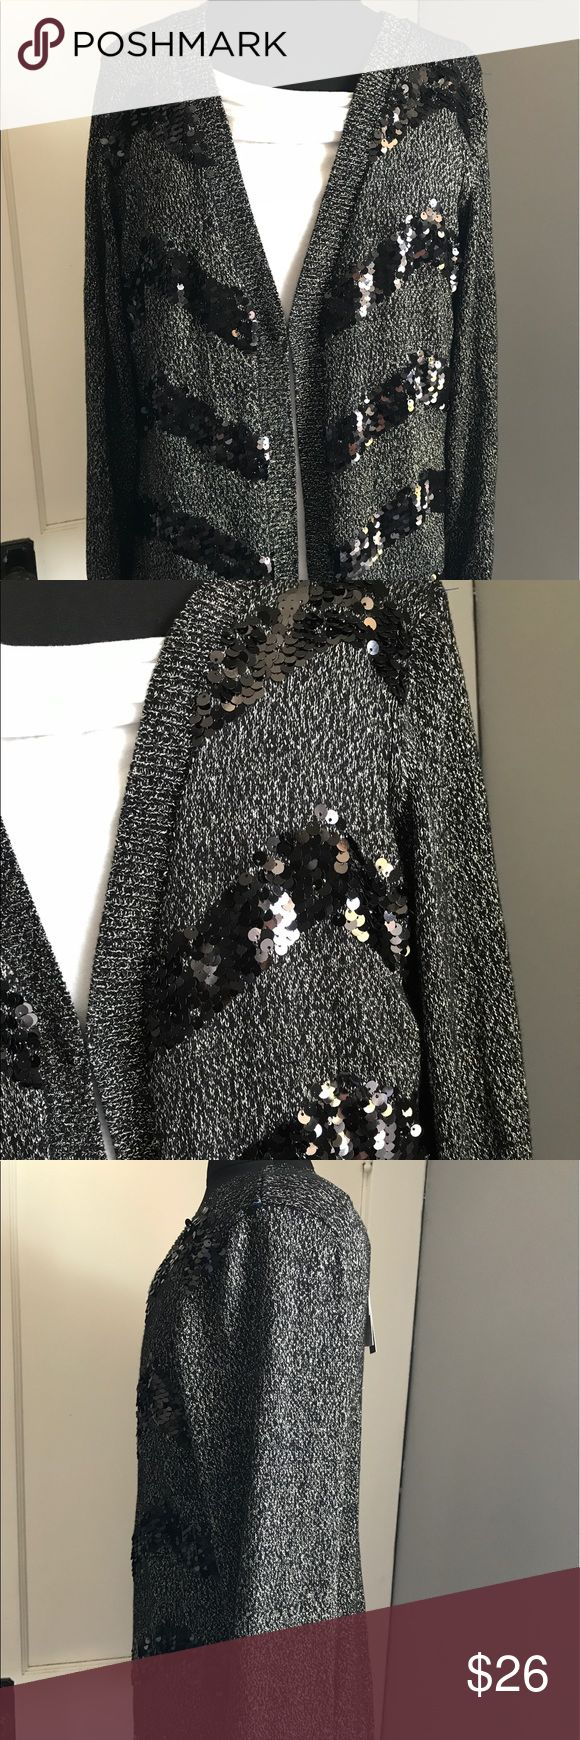 NWT Dana buchman grey sequins cardigan medium Brand new with the tag  Size medium  Sequins cardigan  With silver statement that's looks fancy Dana Buchman Sweaters Cardigans